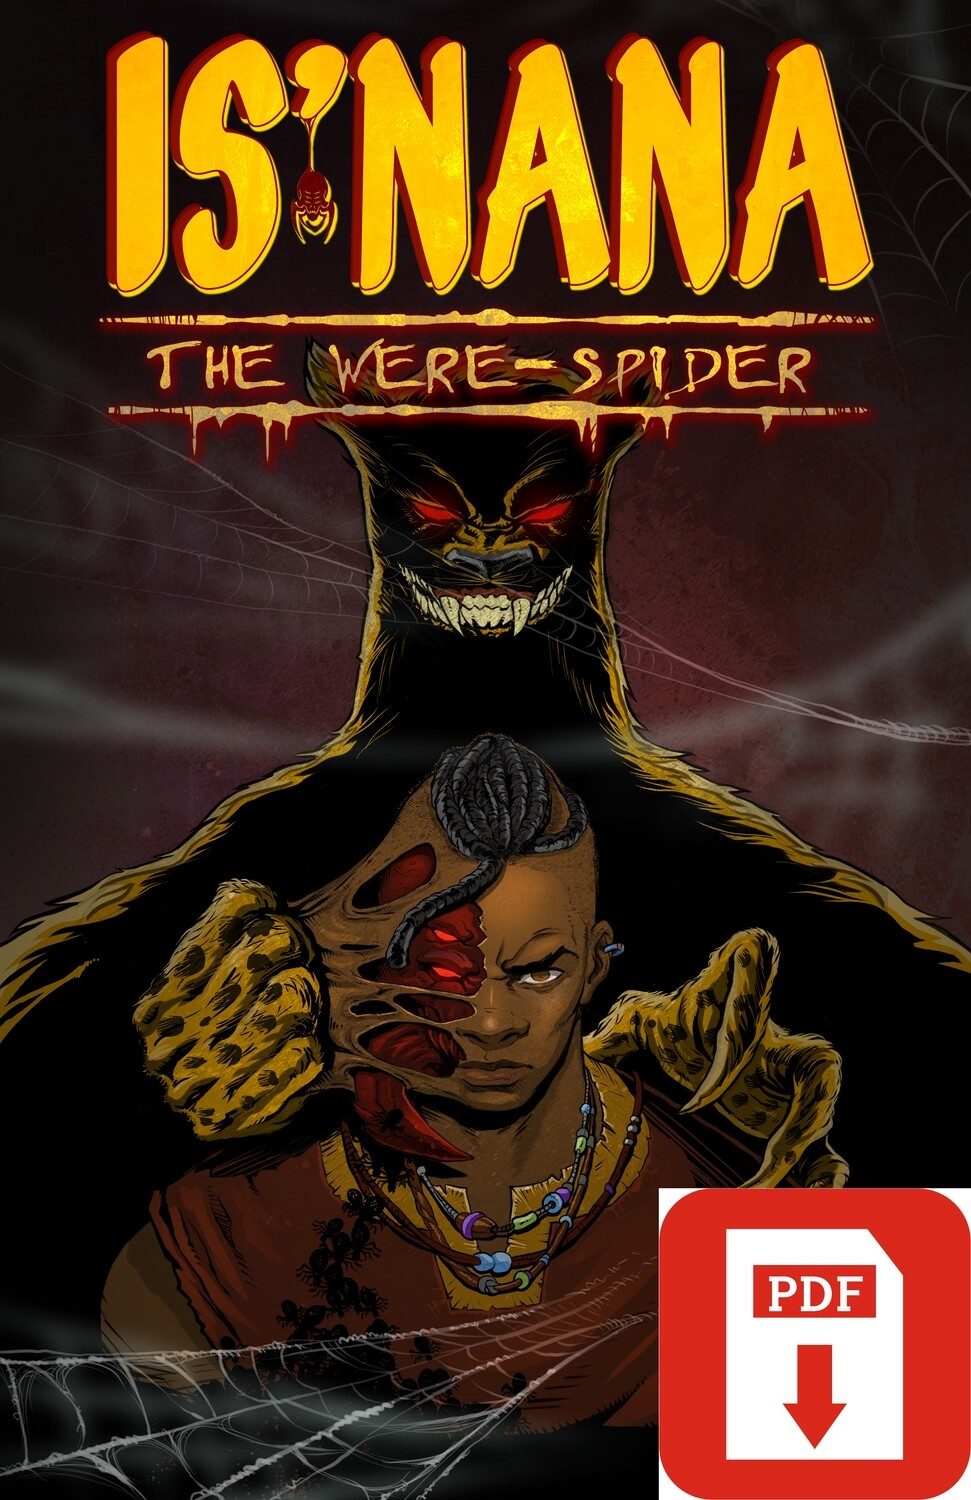 Is'nana the Were-Spider Vol 1: Forgotten Stories PDF Digital Download